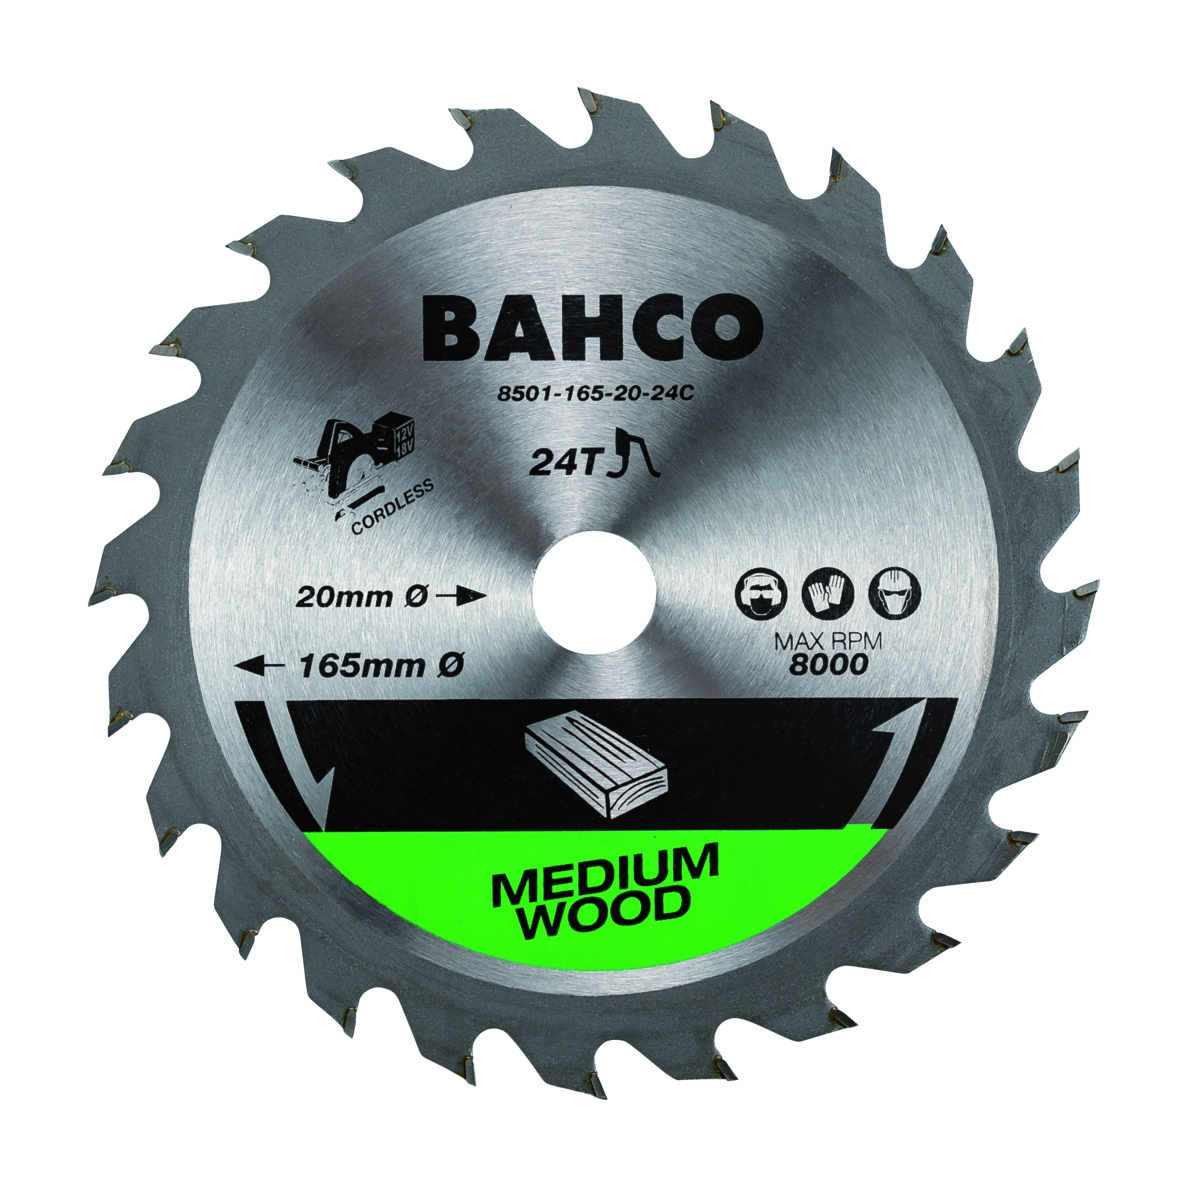 Circular saw blade for cordless saw machines 184x20mm 24T for wood